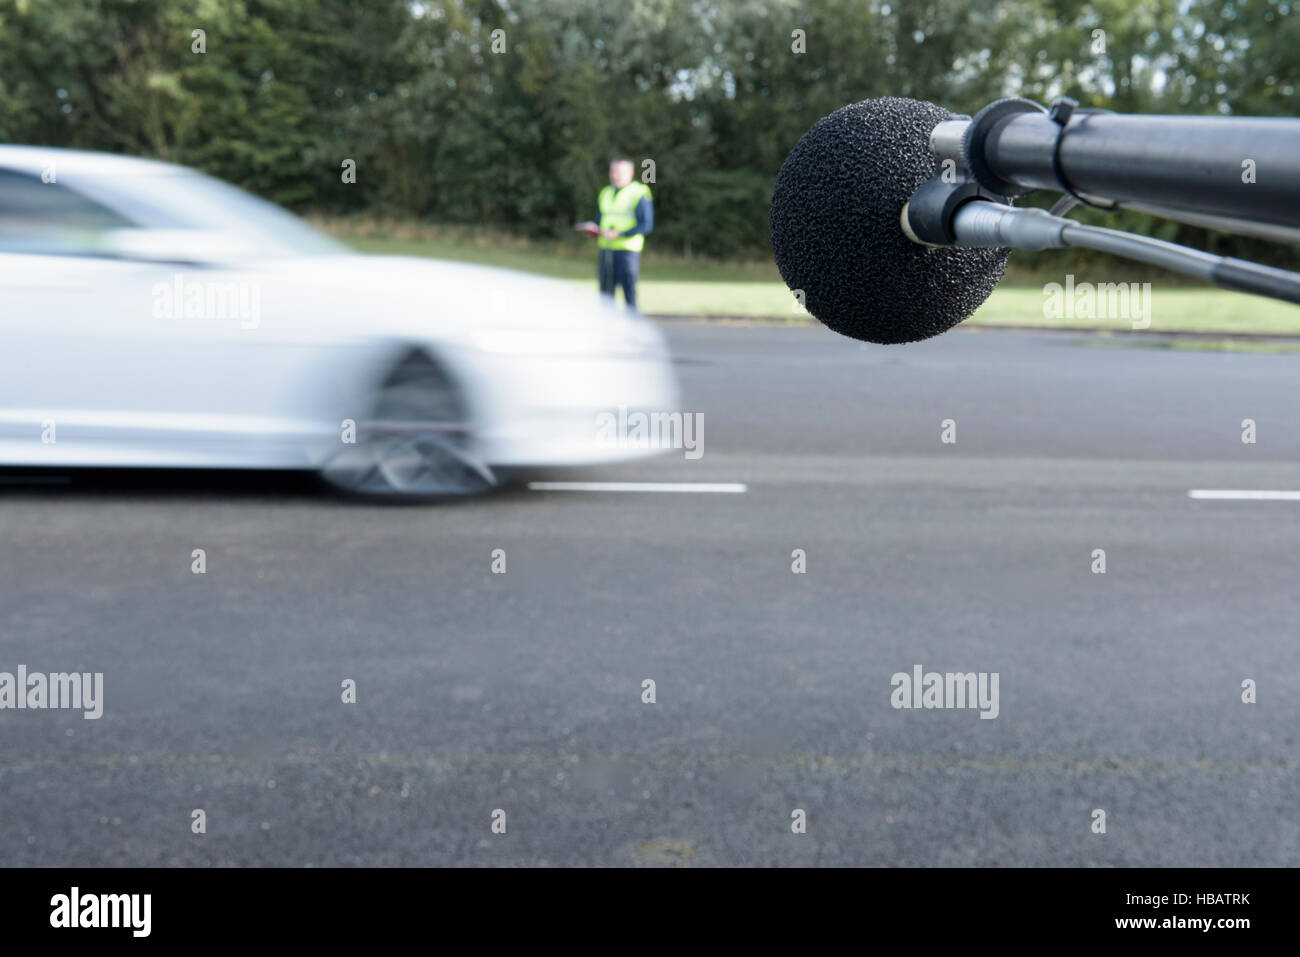 Engineer measuring vehicle sound level at test track - Stock Image